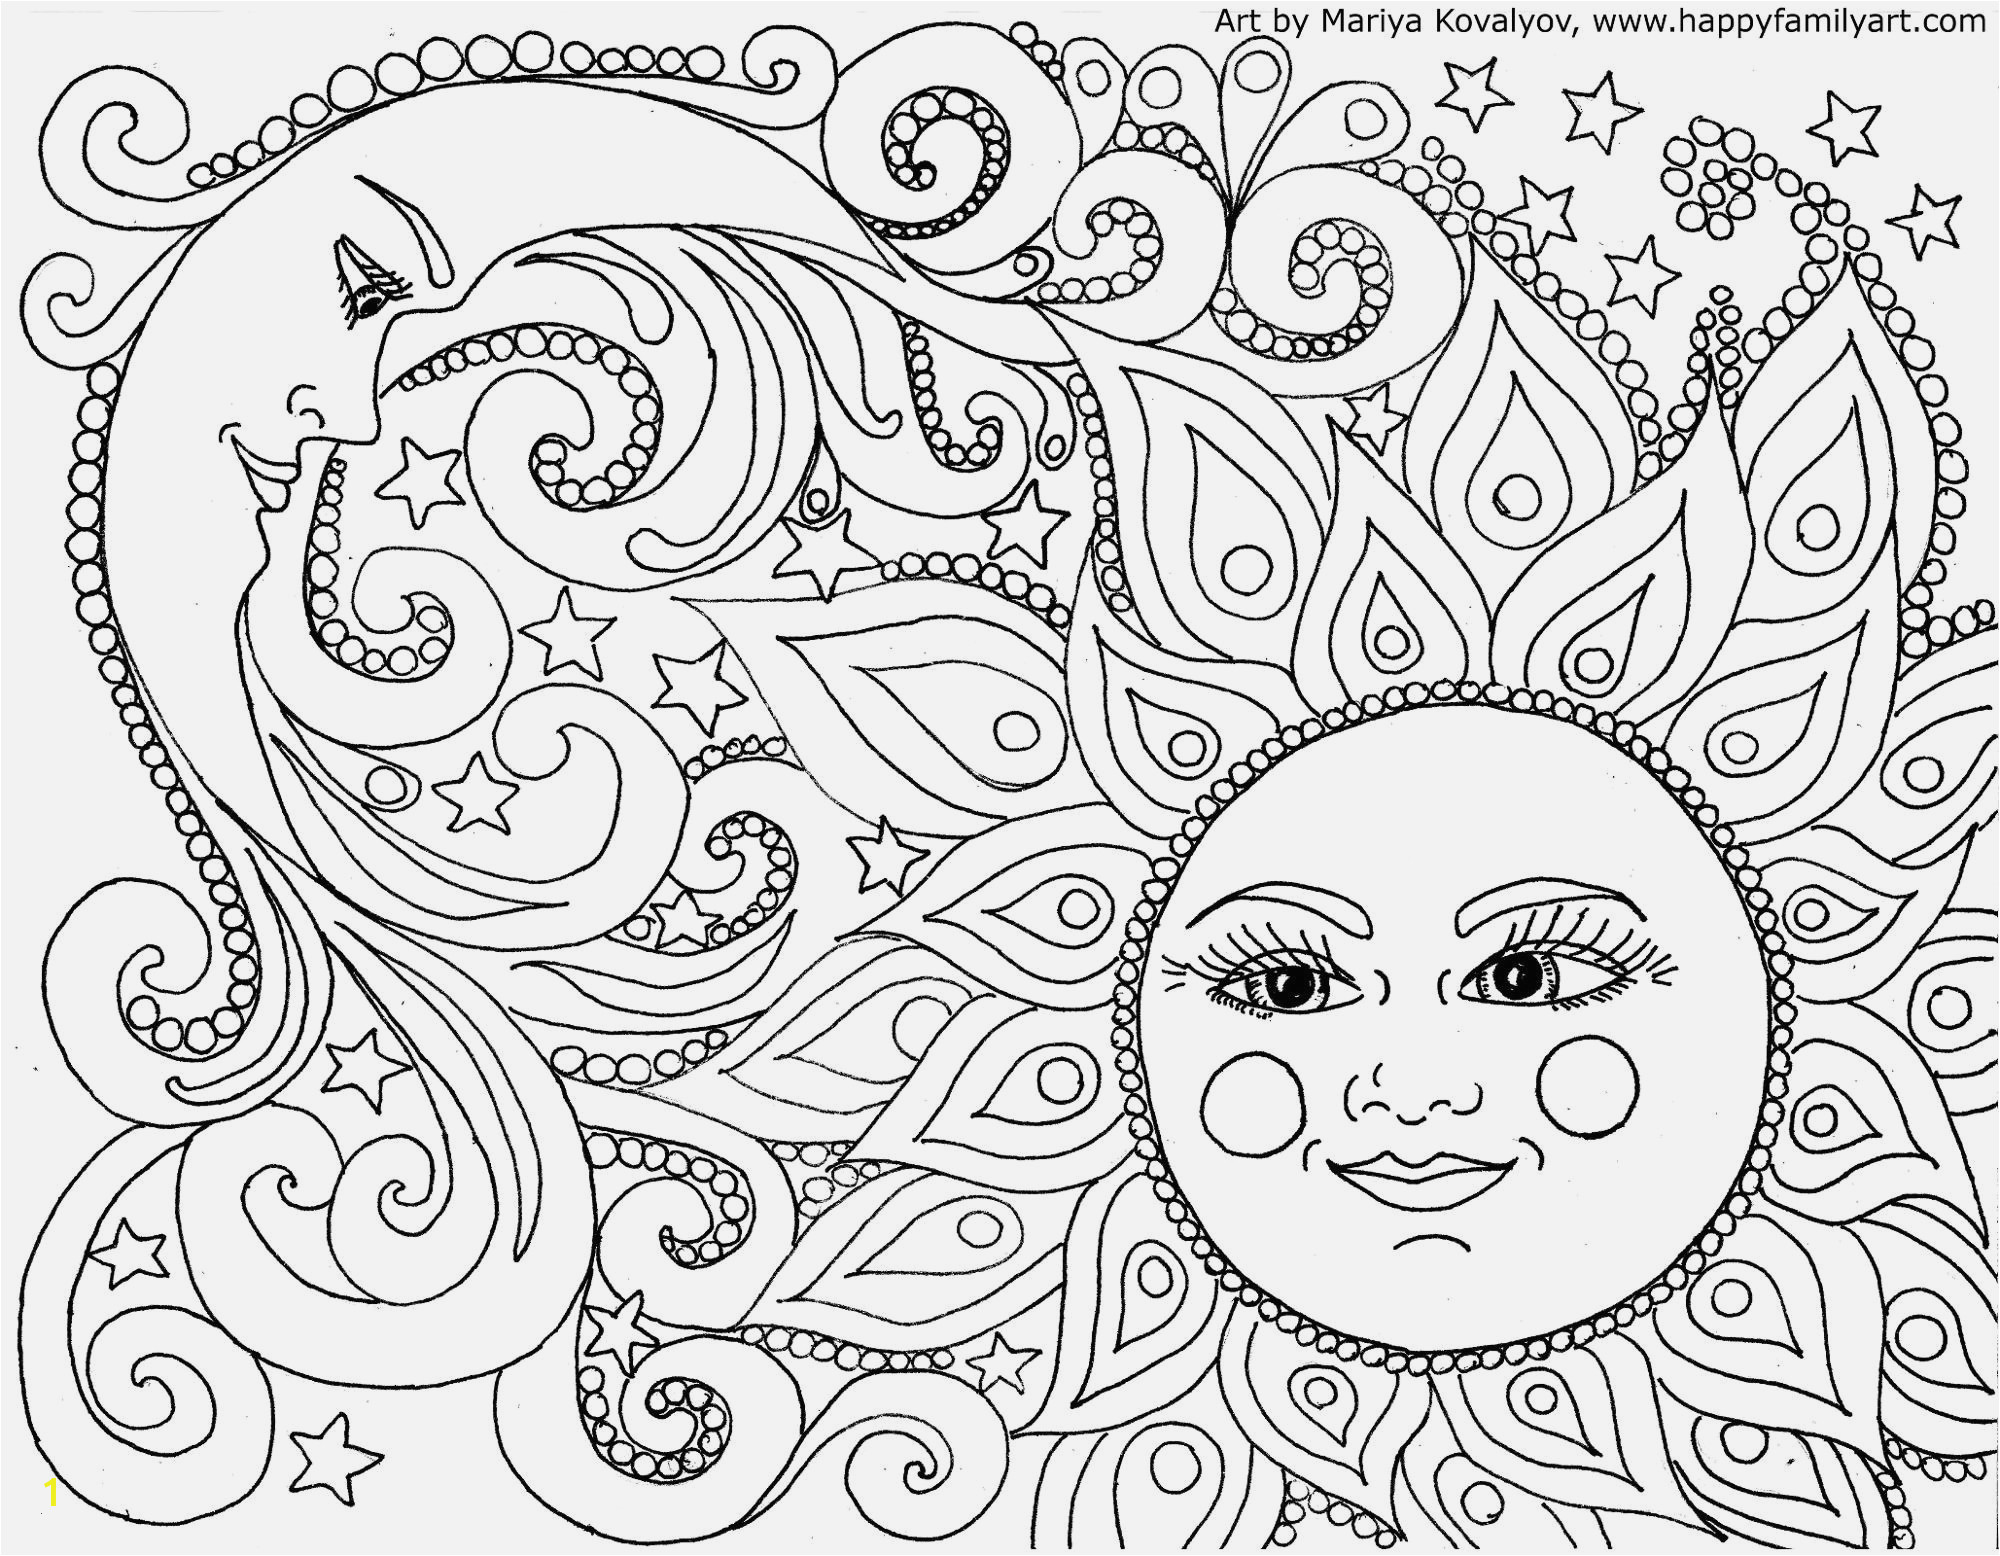 Funny Coloring Pages for Adults Printable Coloring Pages Adult Coloring Book Pages Beautiful Funny Adult Coloring